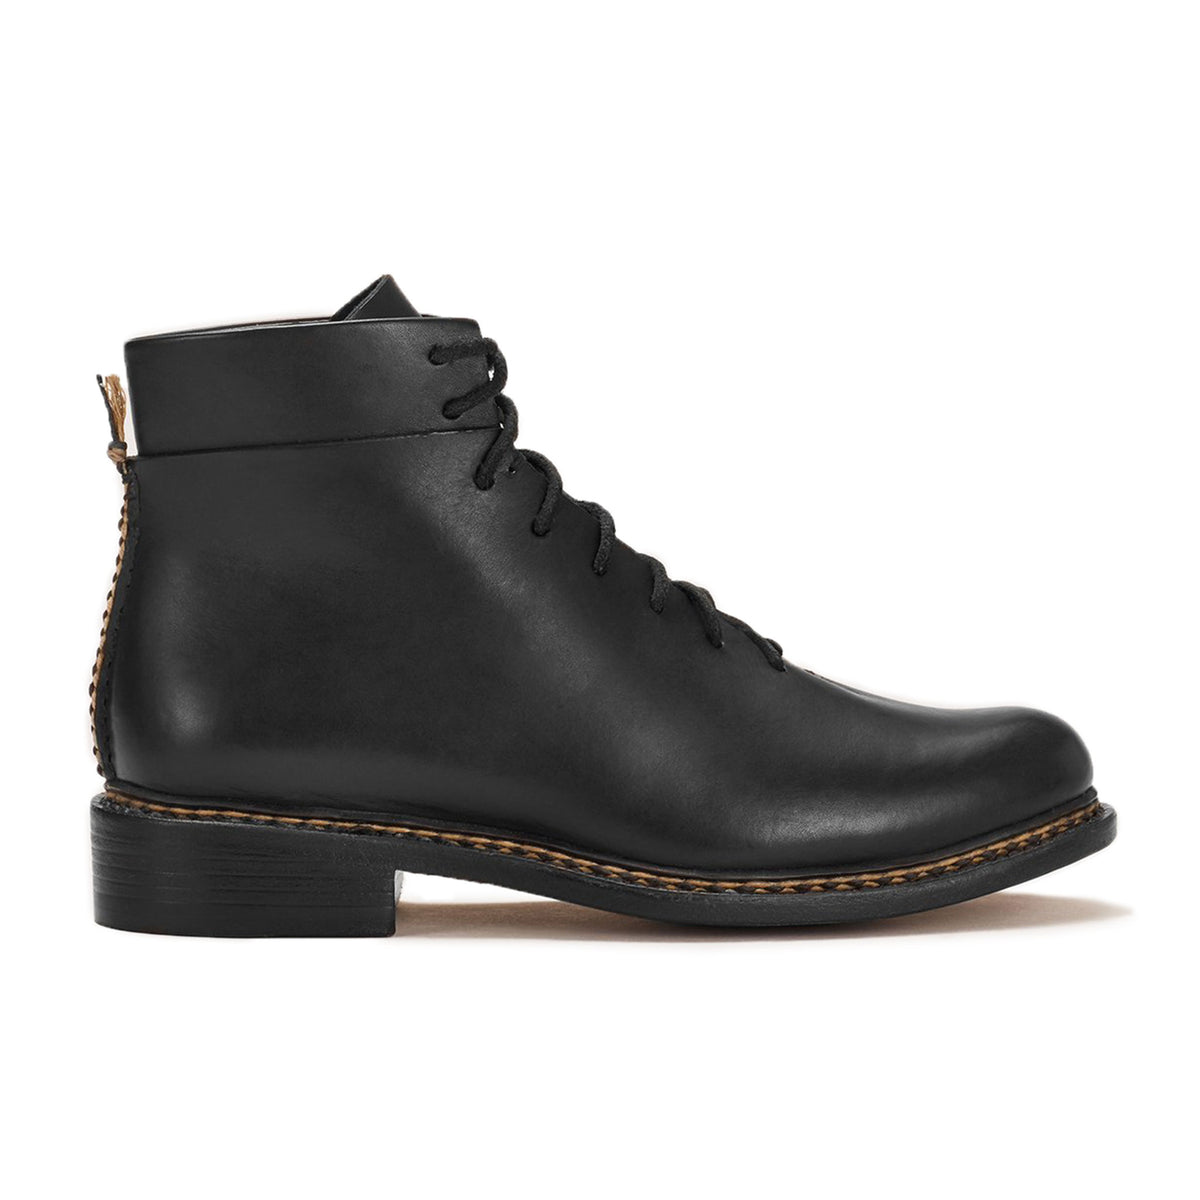 FEIT Braided Lace-Up Boots Footwear Shoes Leather Black Side